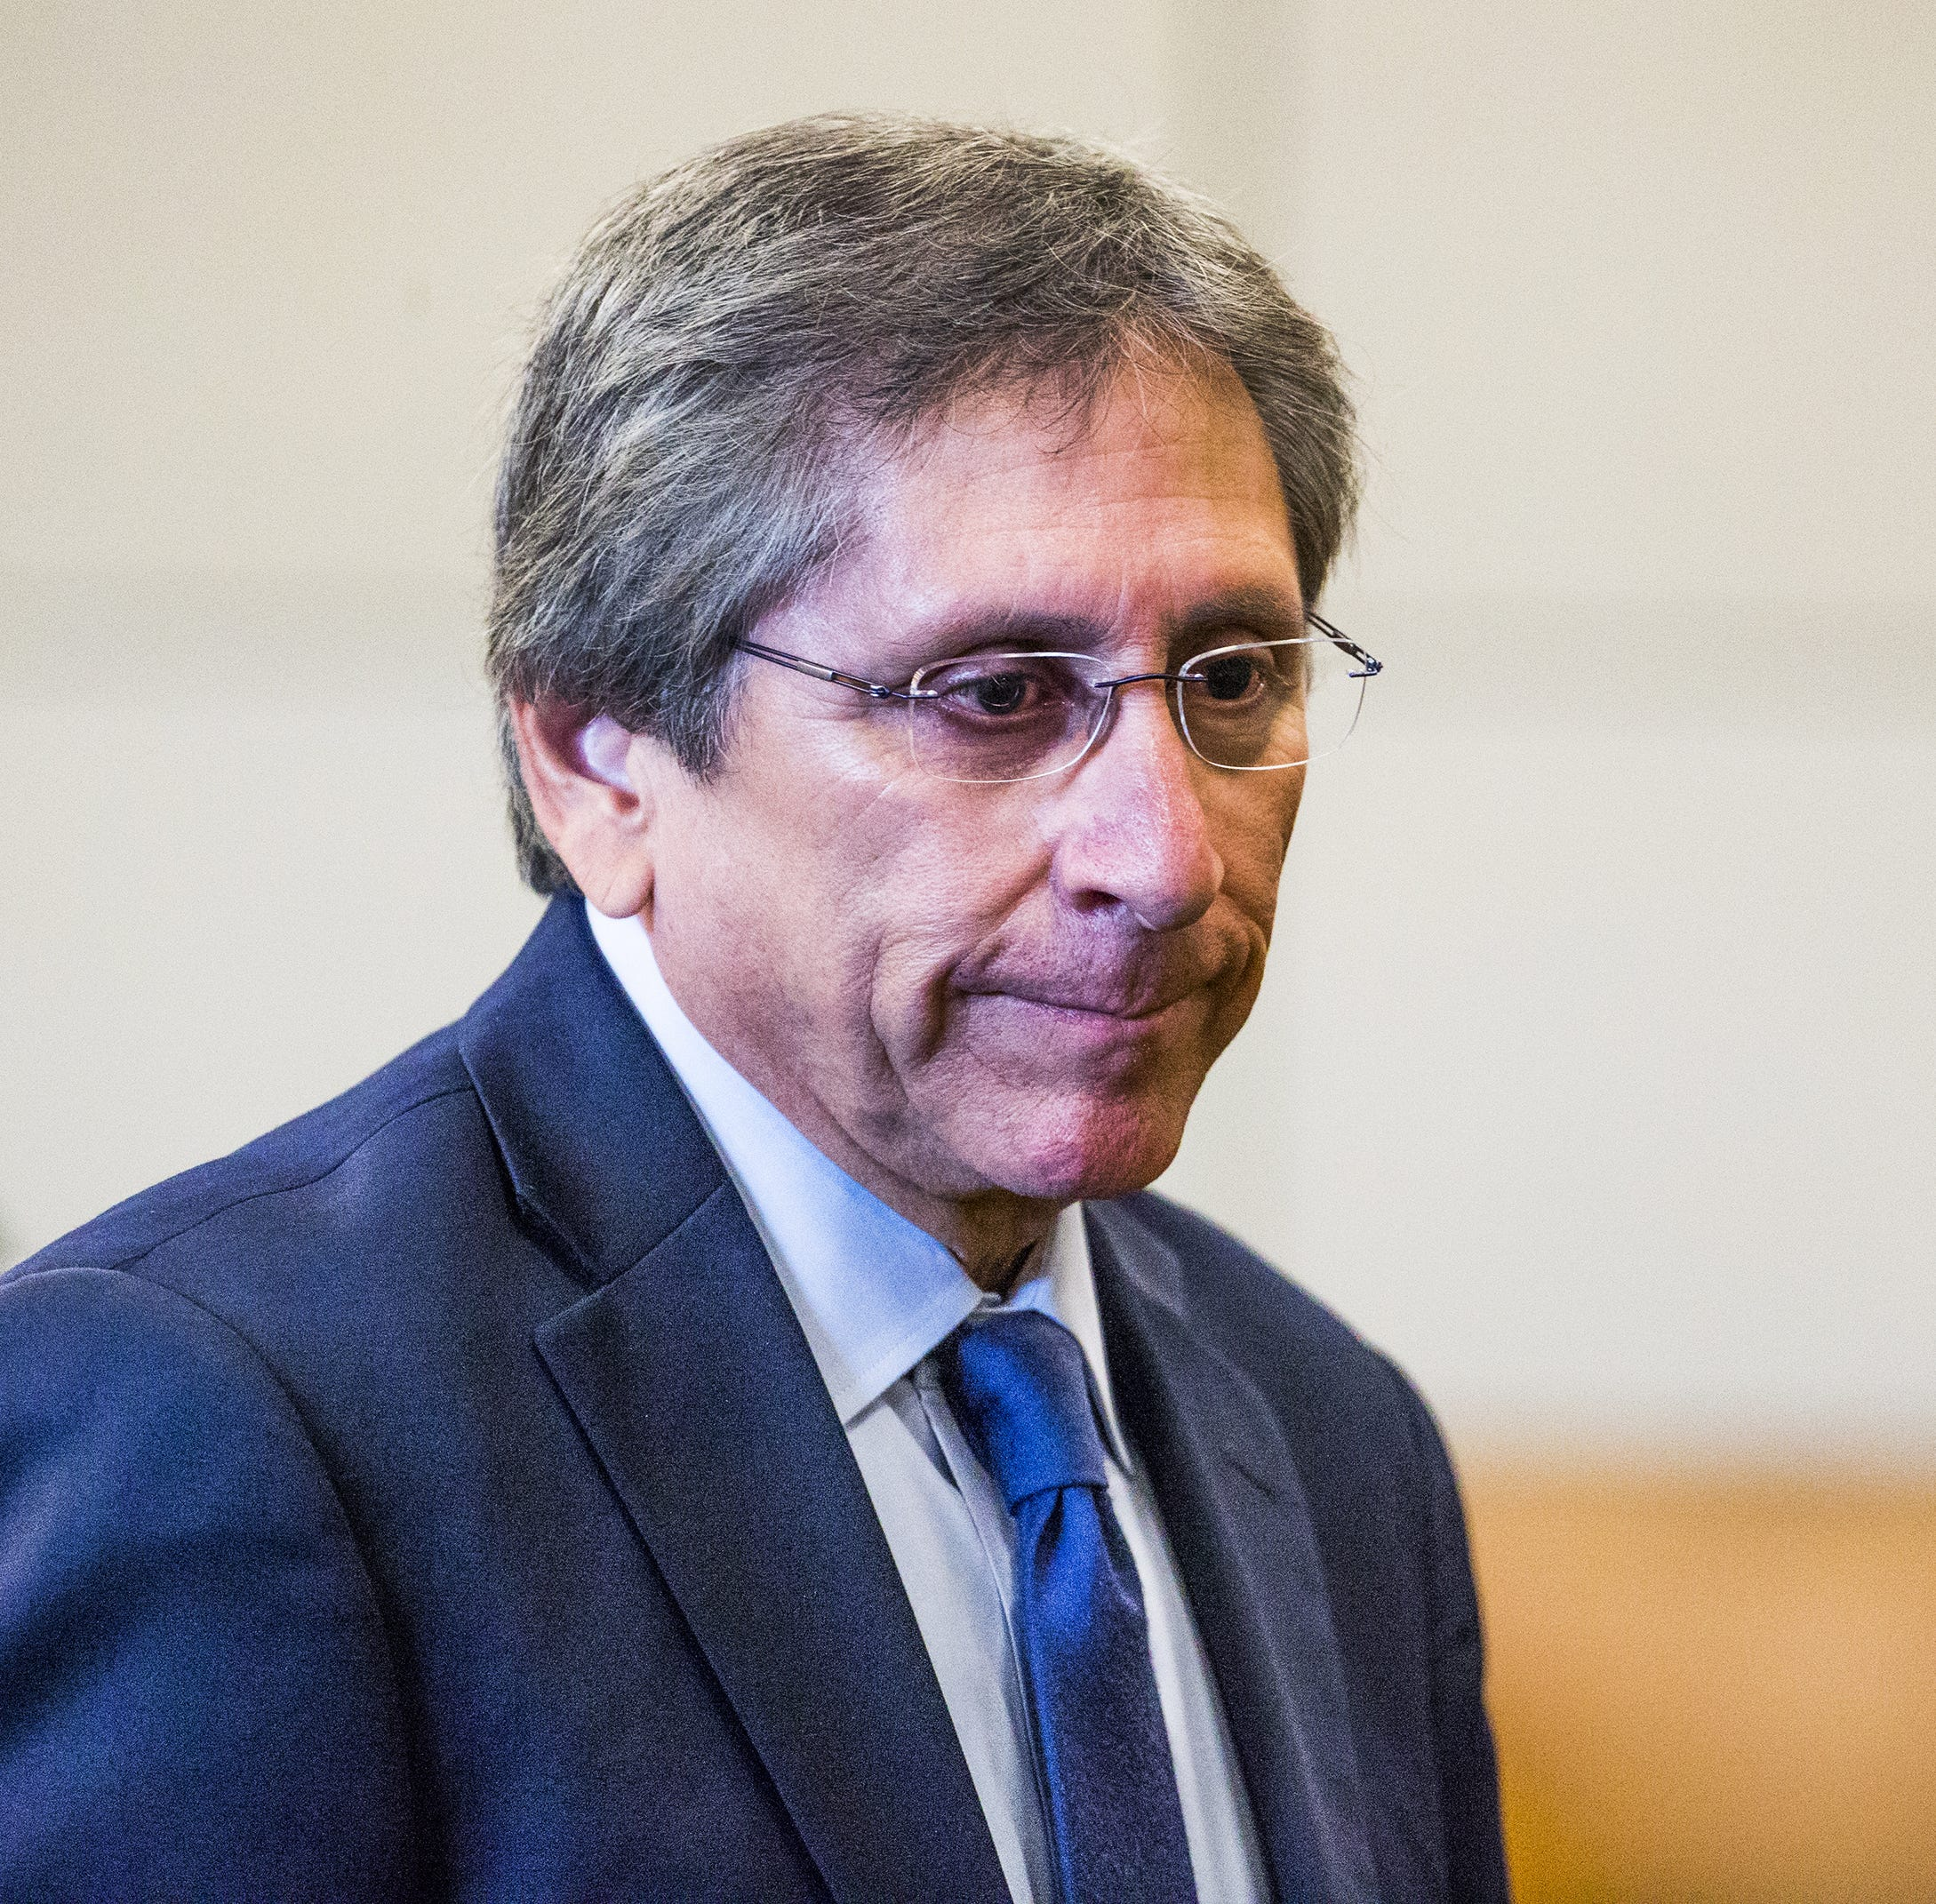 Jodi Arias prosecutor Juan Martinez faces formal misconduct complaint from state Bar